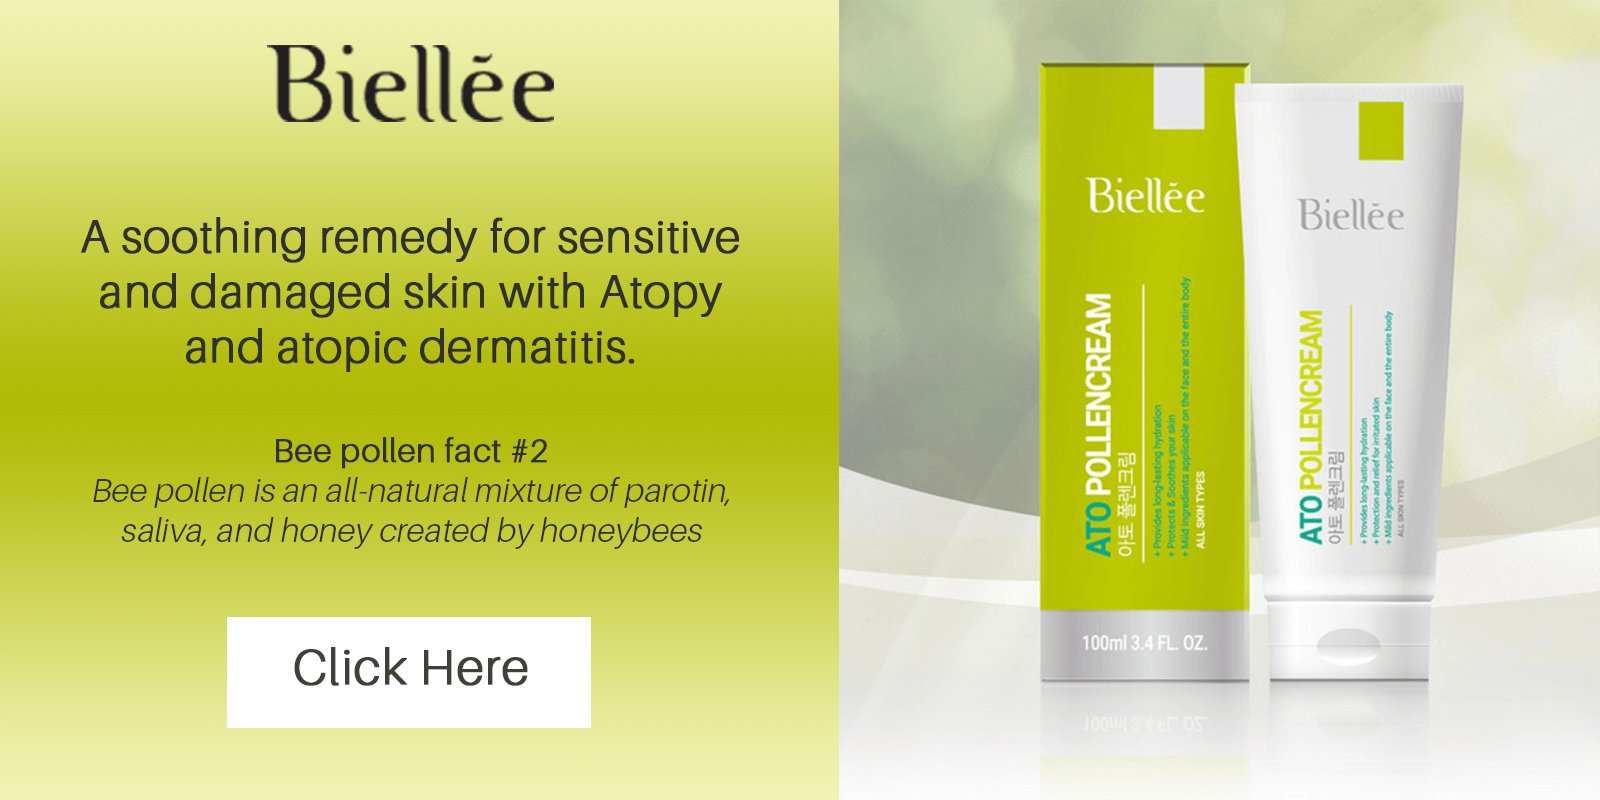 Biellee Cream